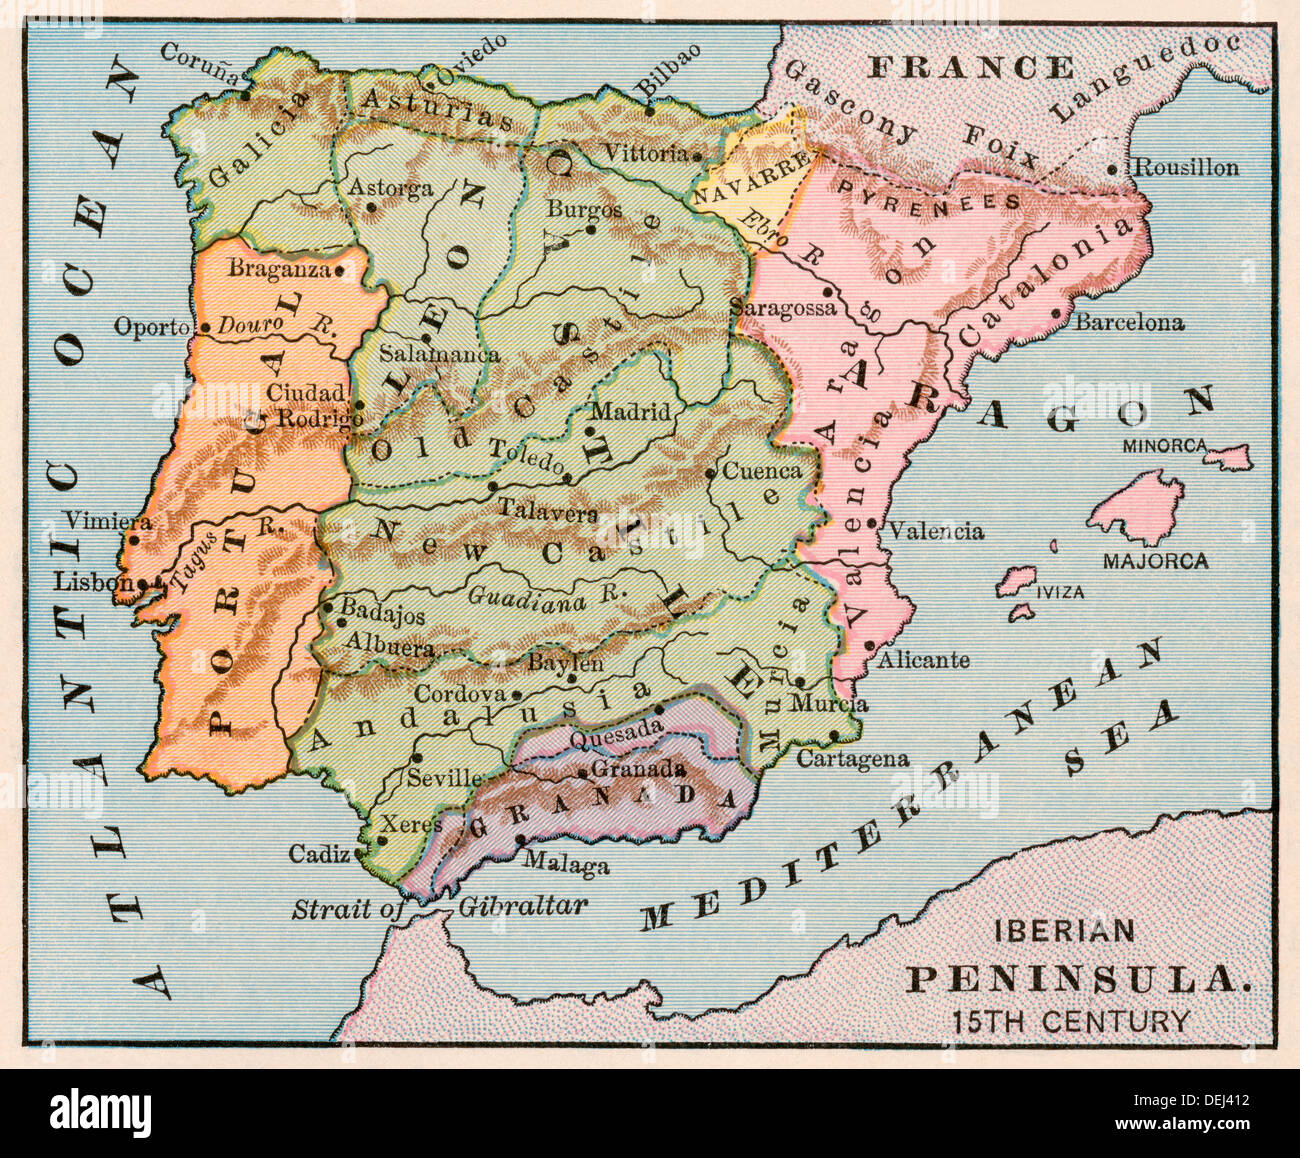 Portugal Map Stock Photos Portugal Map Stock Images Alamy - Portugal map iberian peninsula